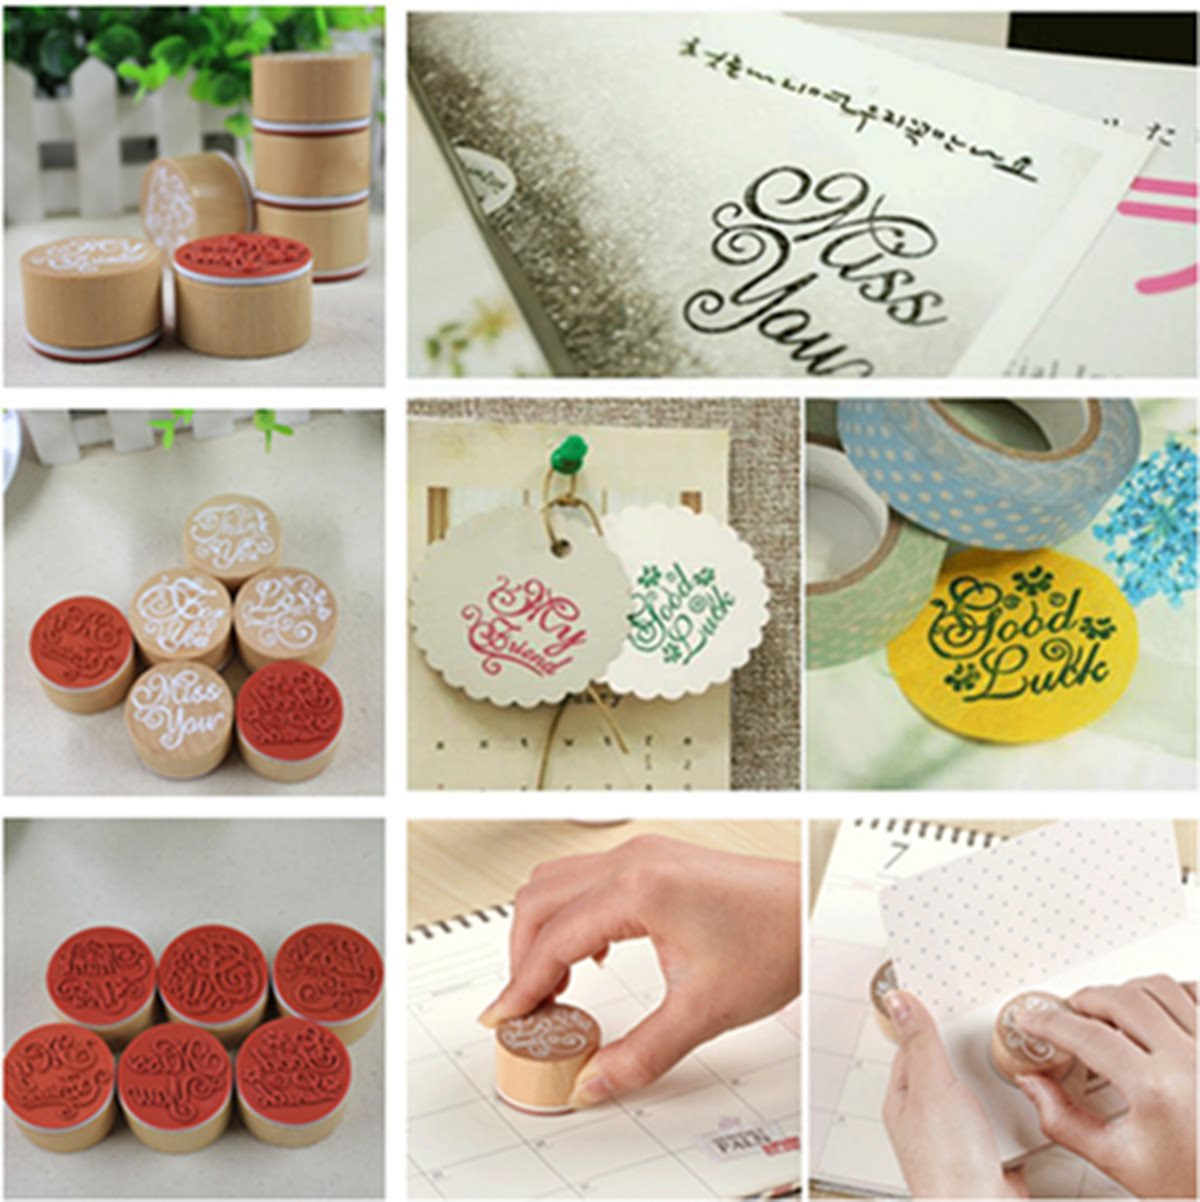 How to scrapbook words -  New Arrival Wooden Round Handwriting Wishes Sentiment Words Floral Pattern Rubber Stamp Scrapbook For Decoration School